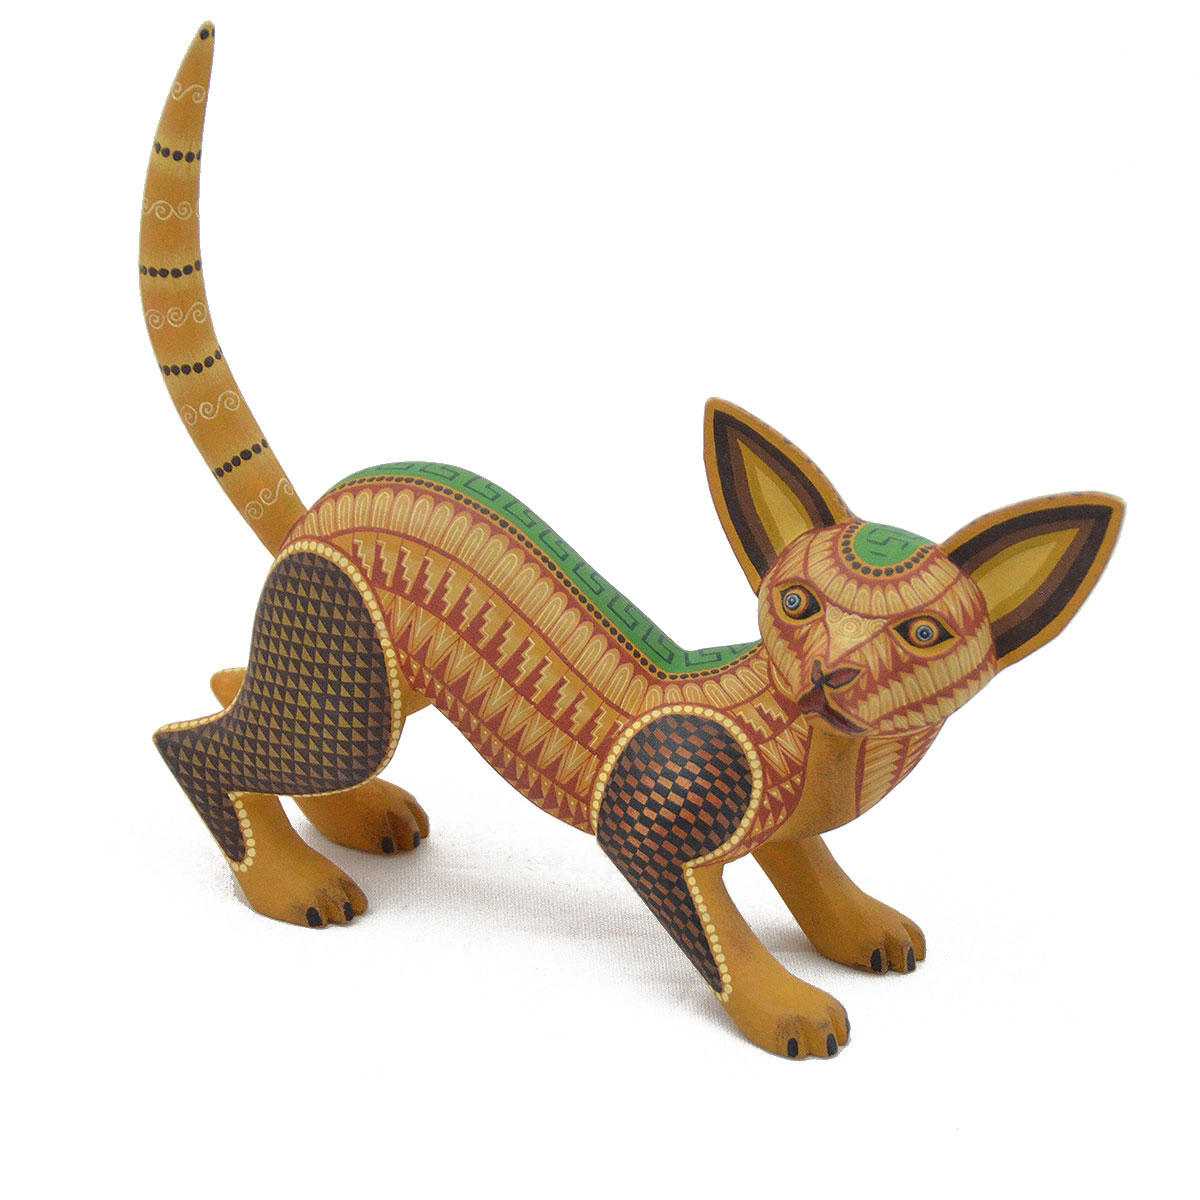 Omar Y Areli Cruz: Oaxacan Wood Carving